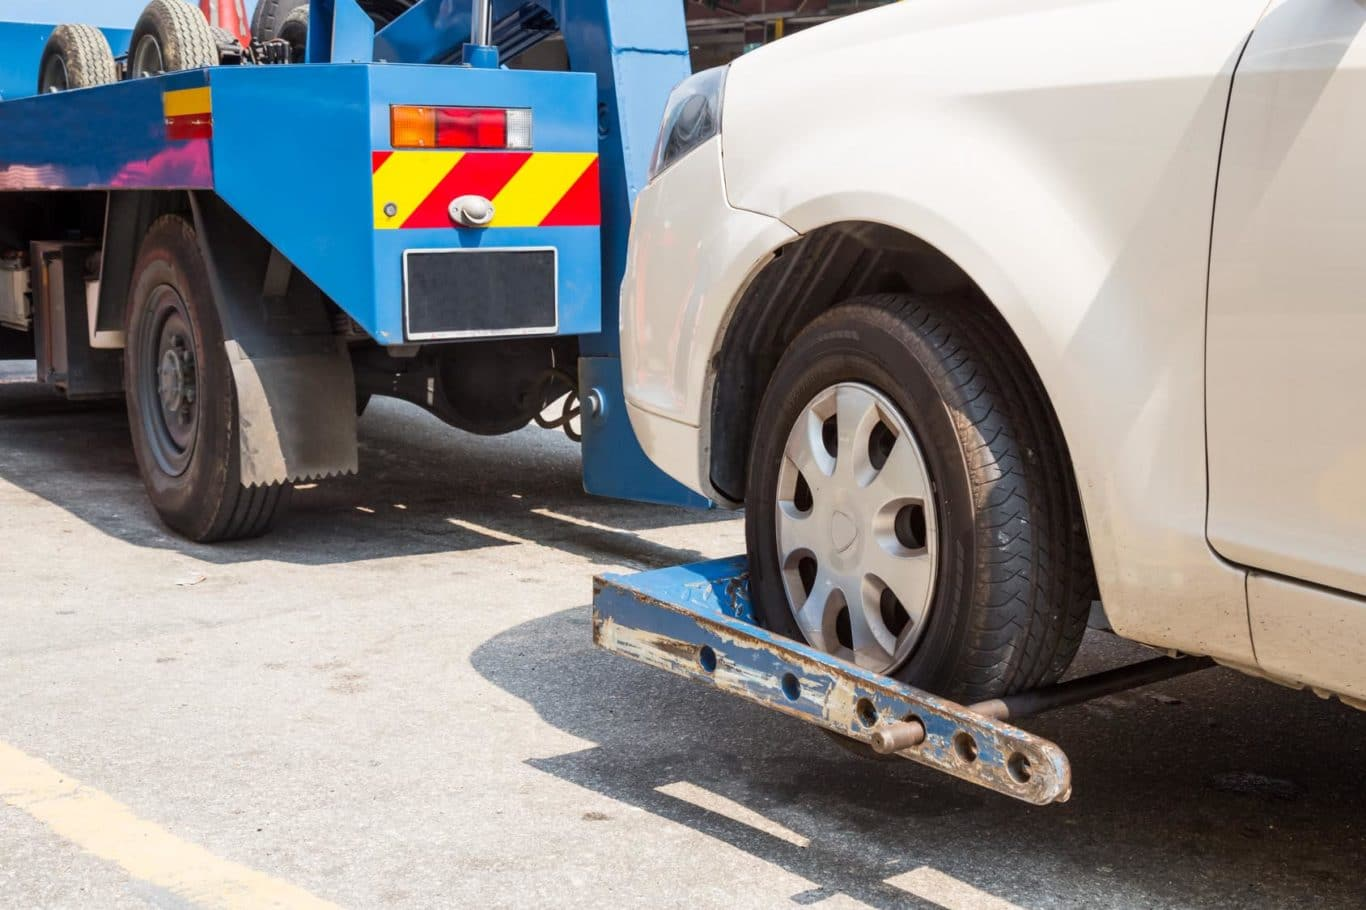 Boyerstown expert Towing services